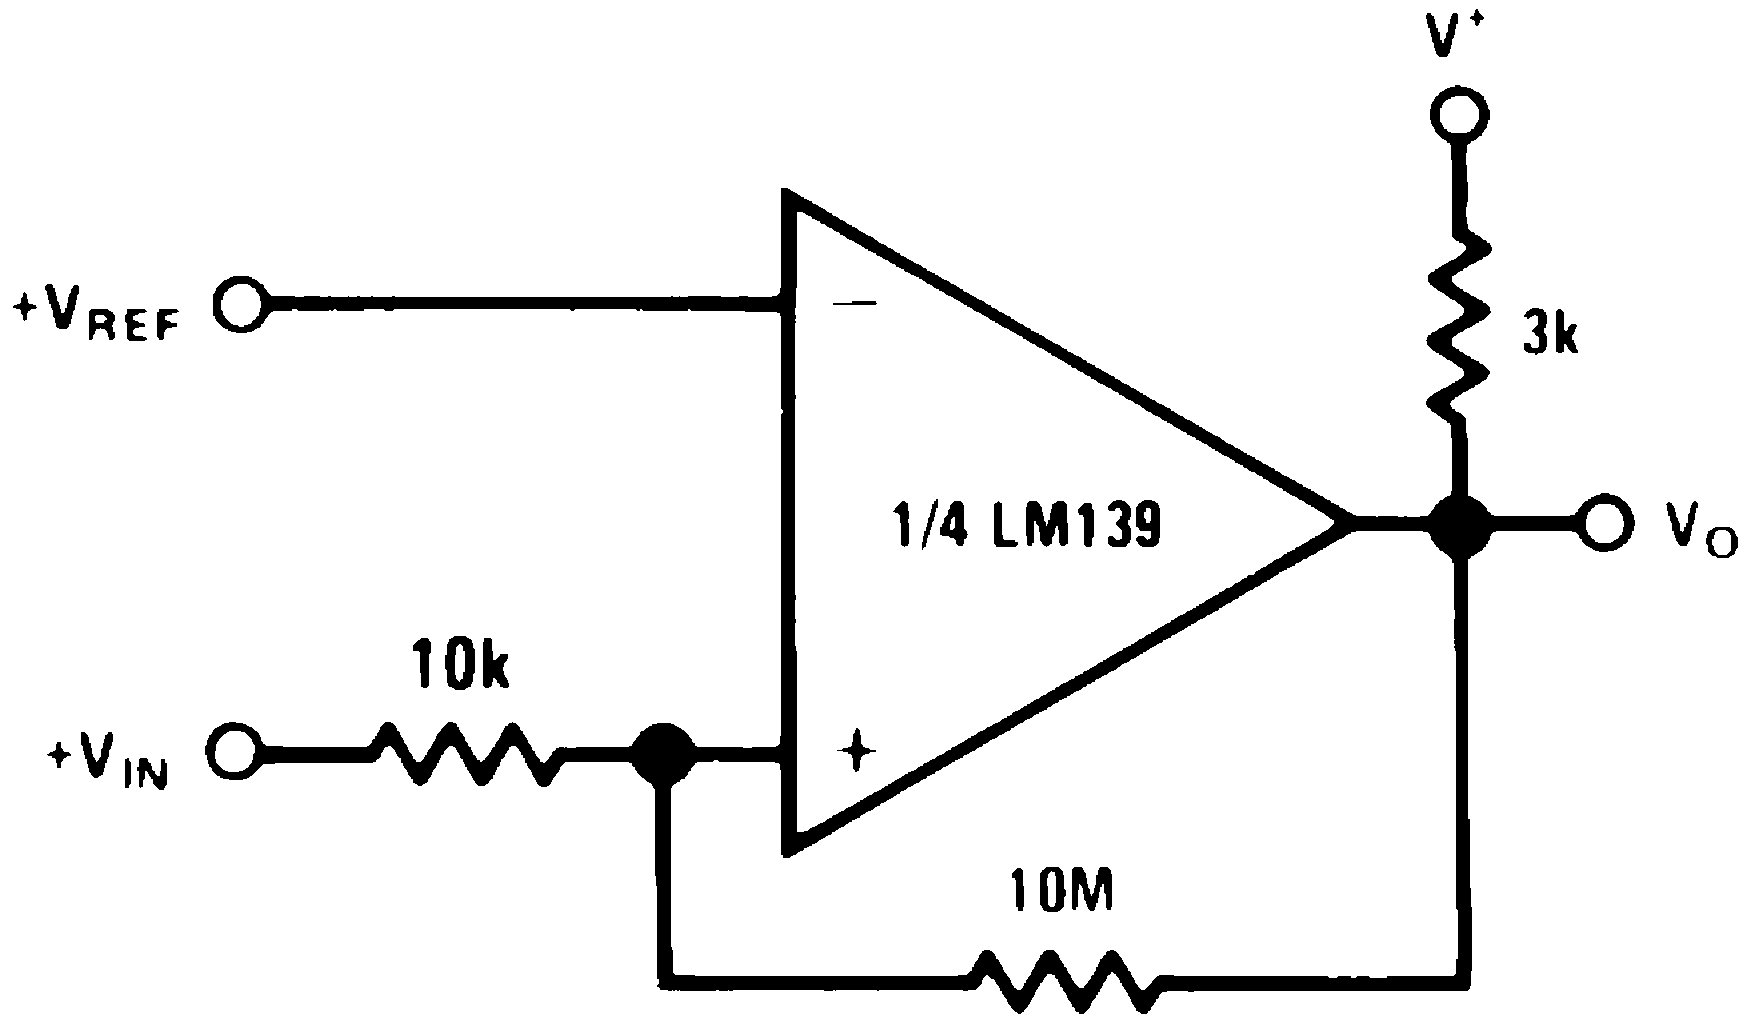 Lm239 N 1 Bit Comparator Block Diagram Non Inverting With Hysteresis V 15 Vdc